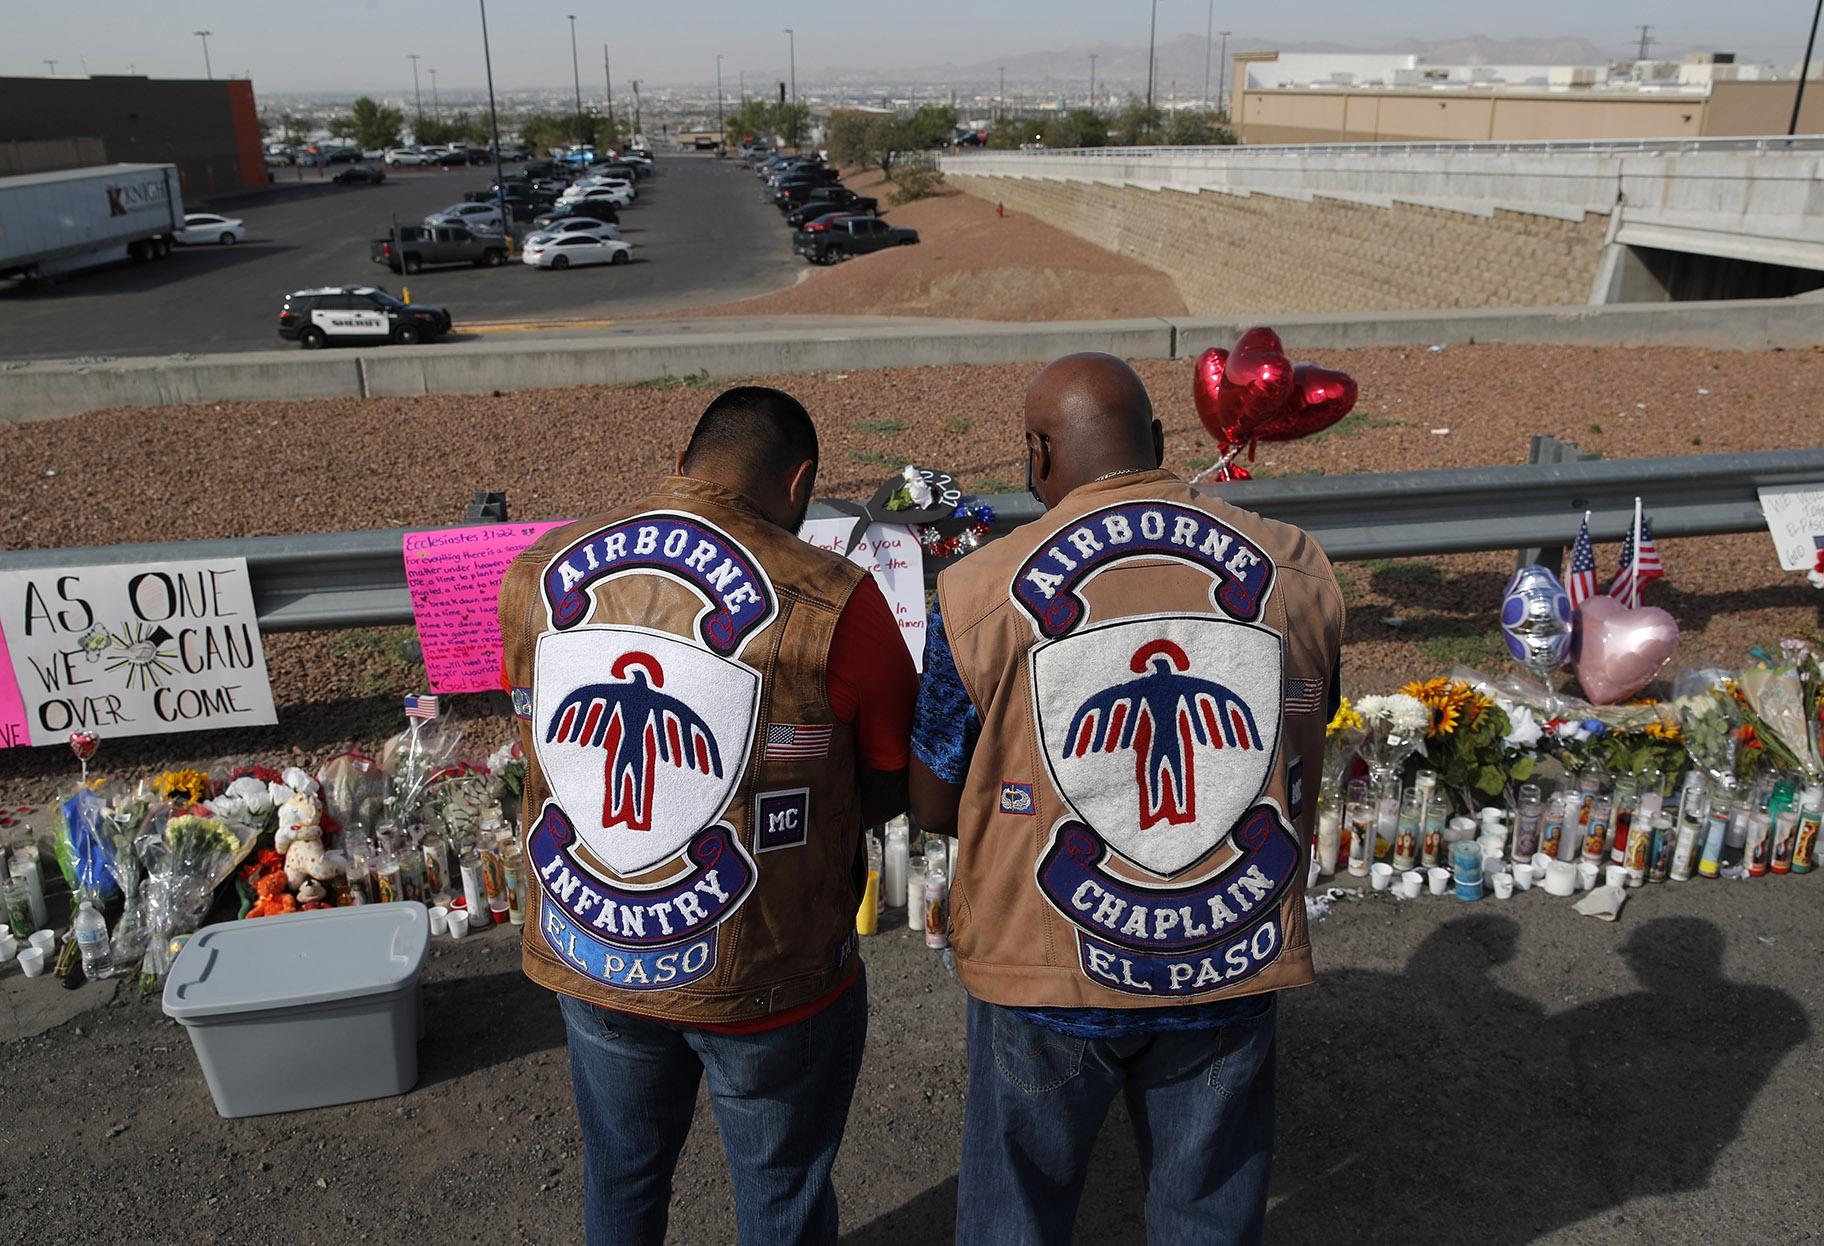 People pray at a makeshift memorial Monday, Aug. 5, 2019 for victims of a mass shooting at a shopping complex in El Paso, Texas. (AP Photo / John Locher)